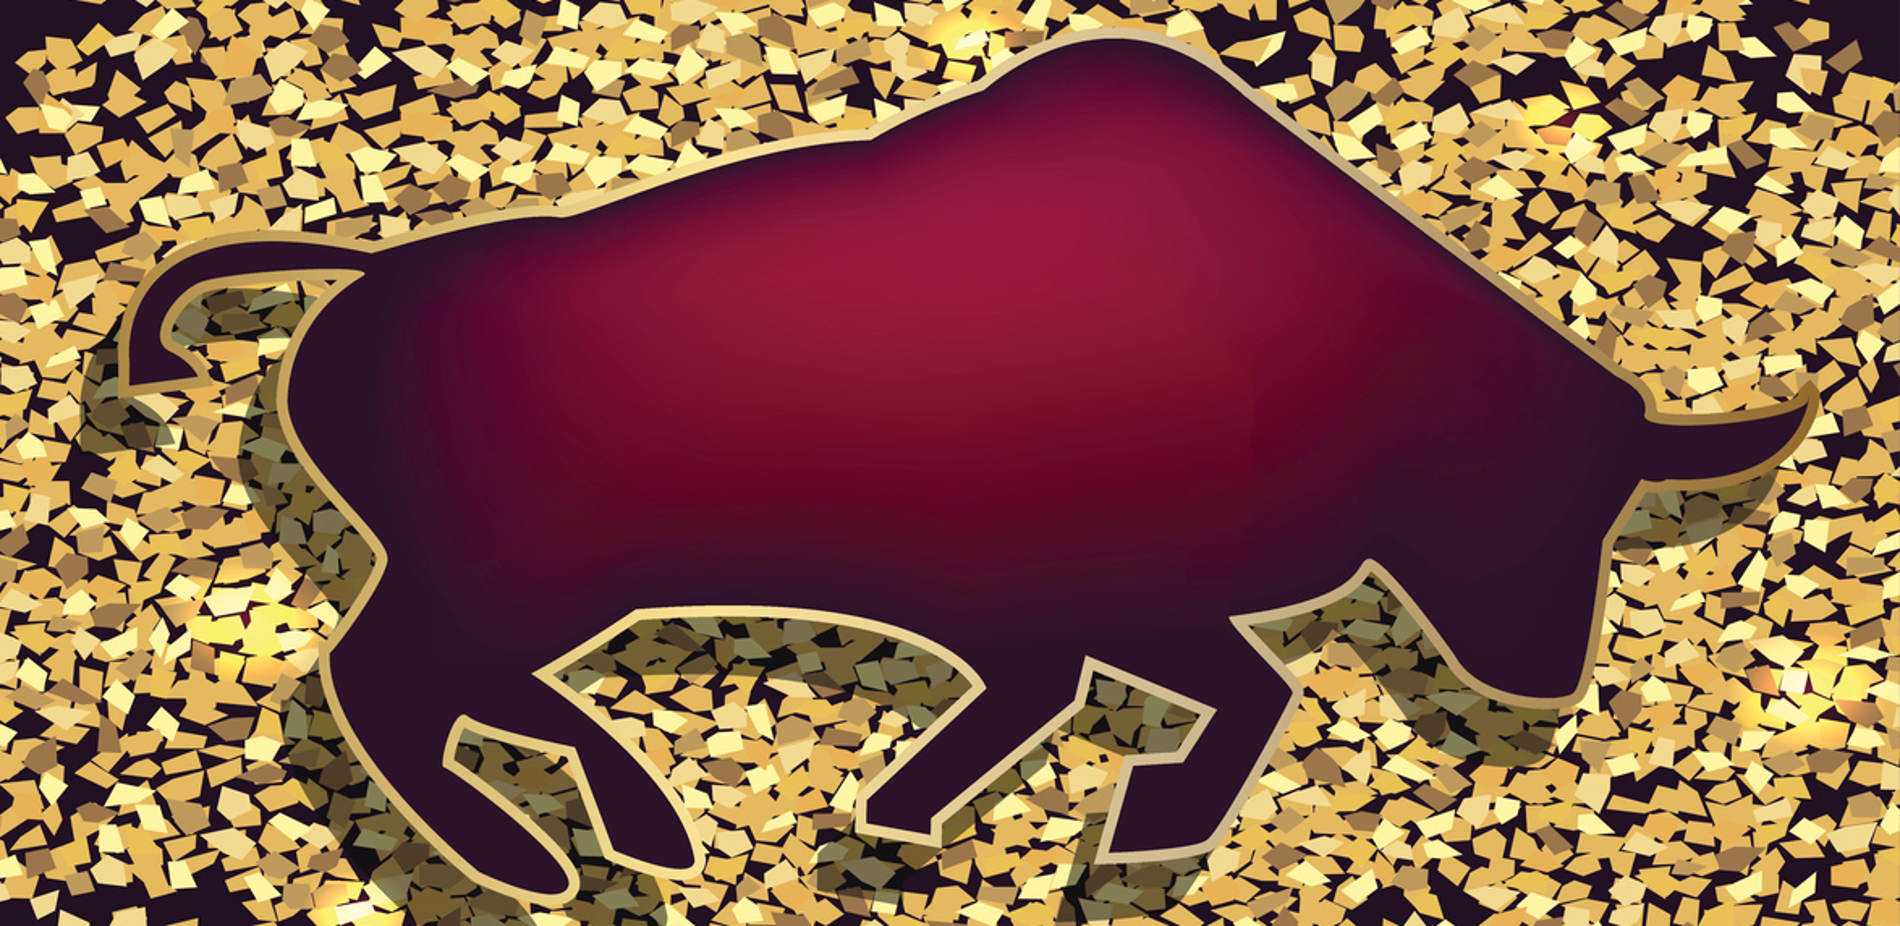 Bitcoin Predictions 2018 >> The Bull Will Stop, Causing a Stock Market Crash in 2018